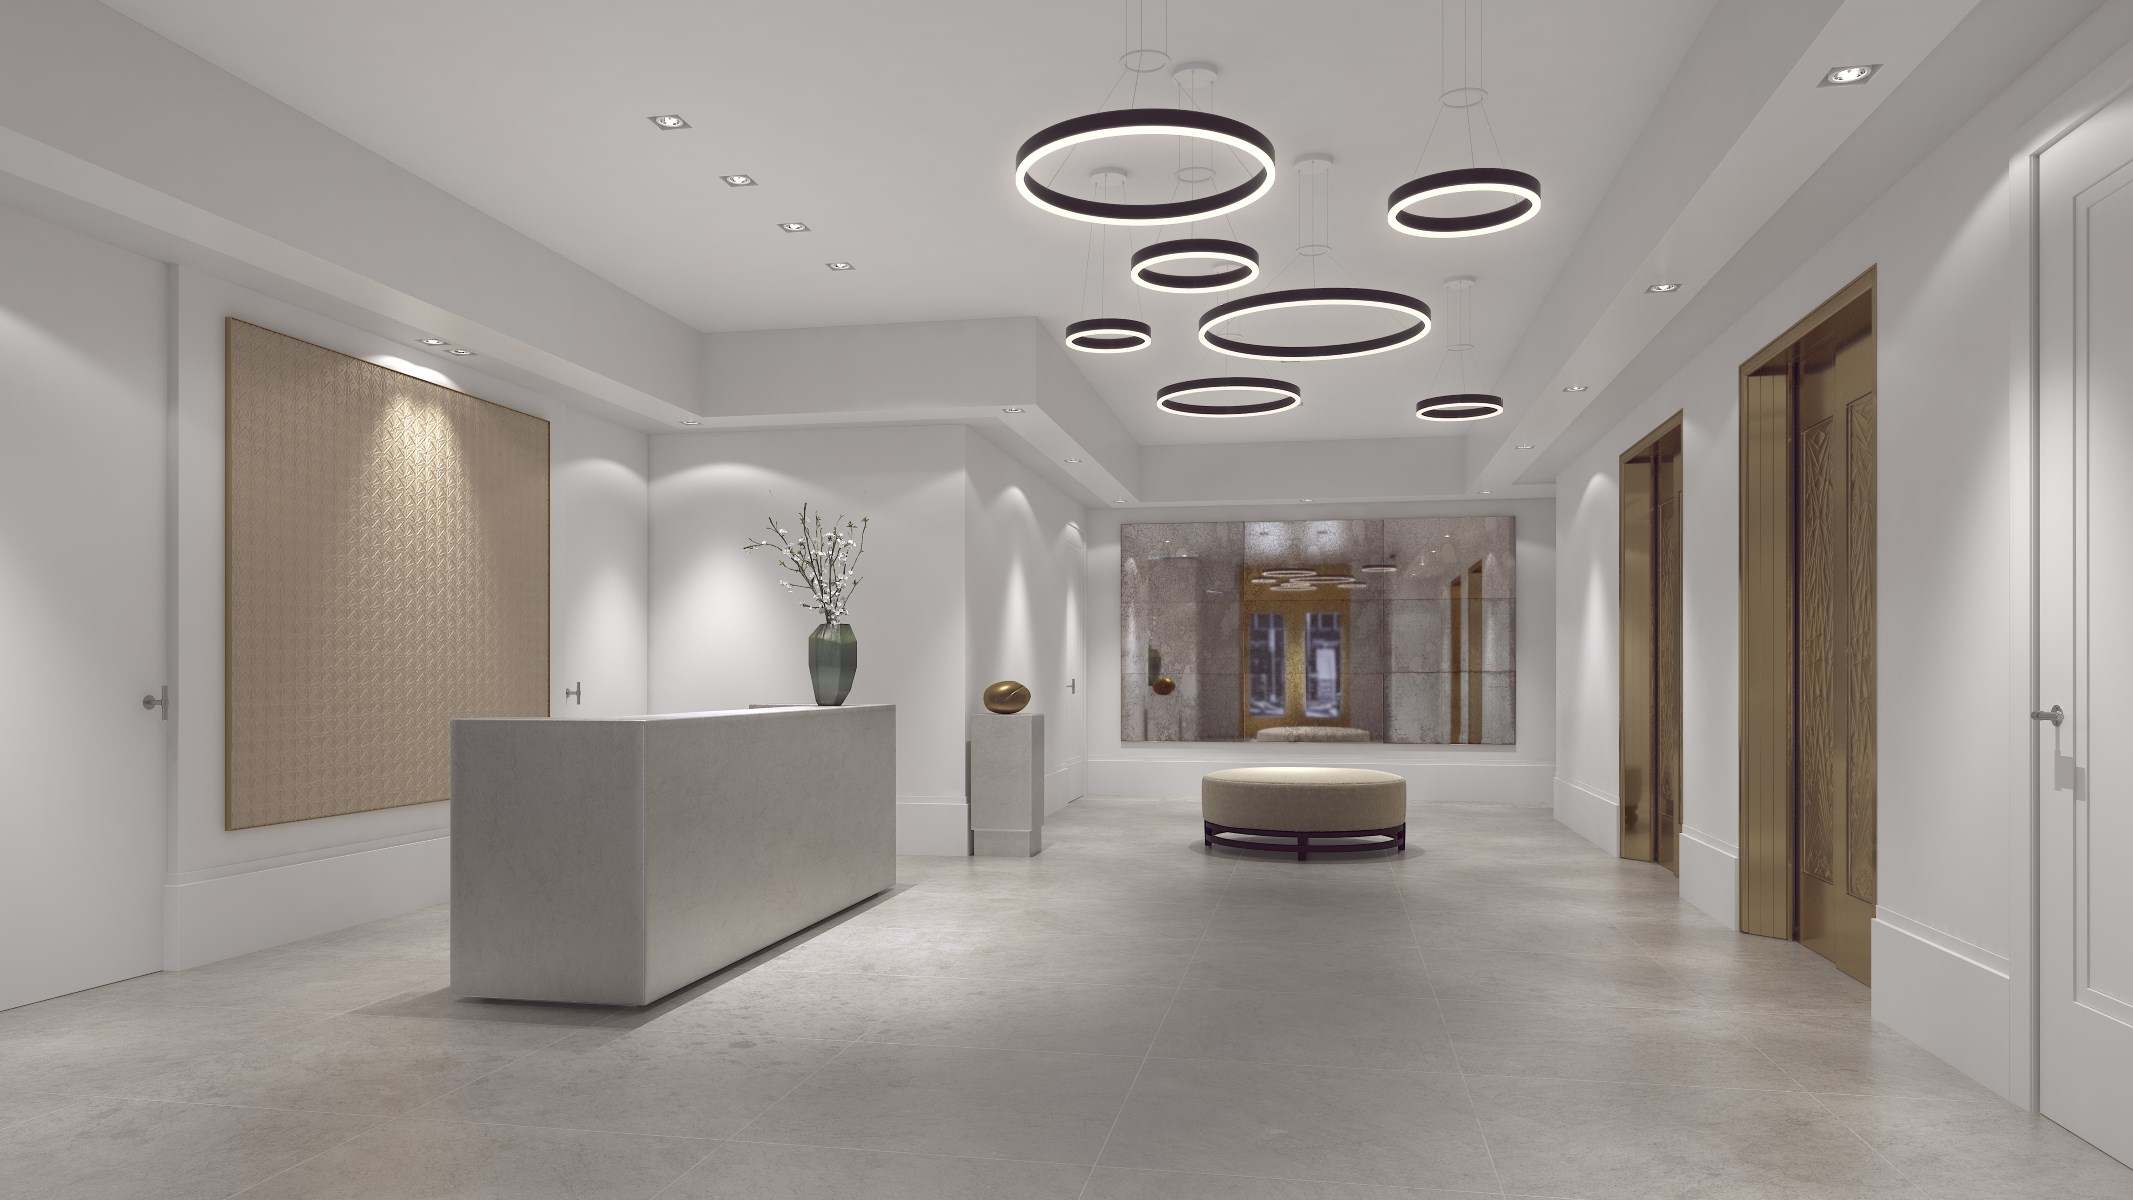 Lobby design and furnishings by Piet Boon